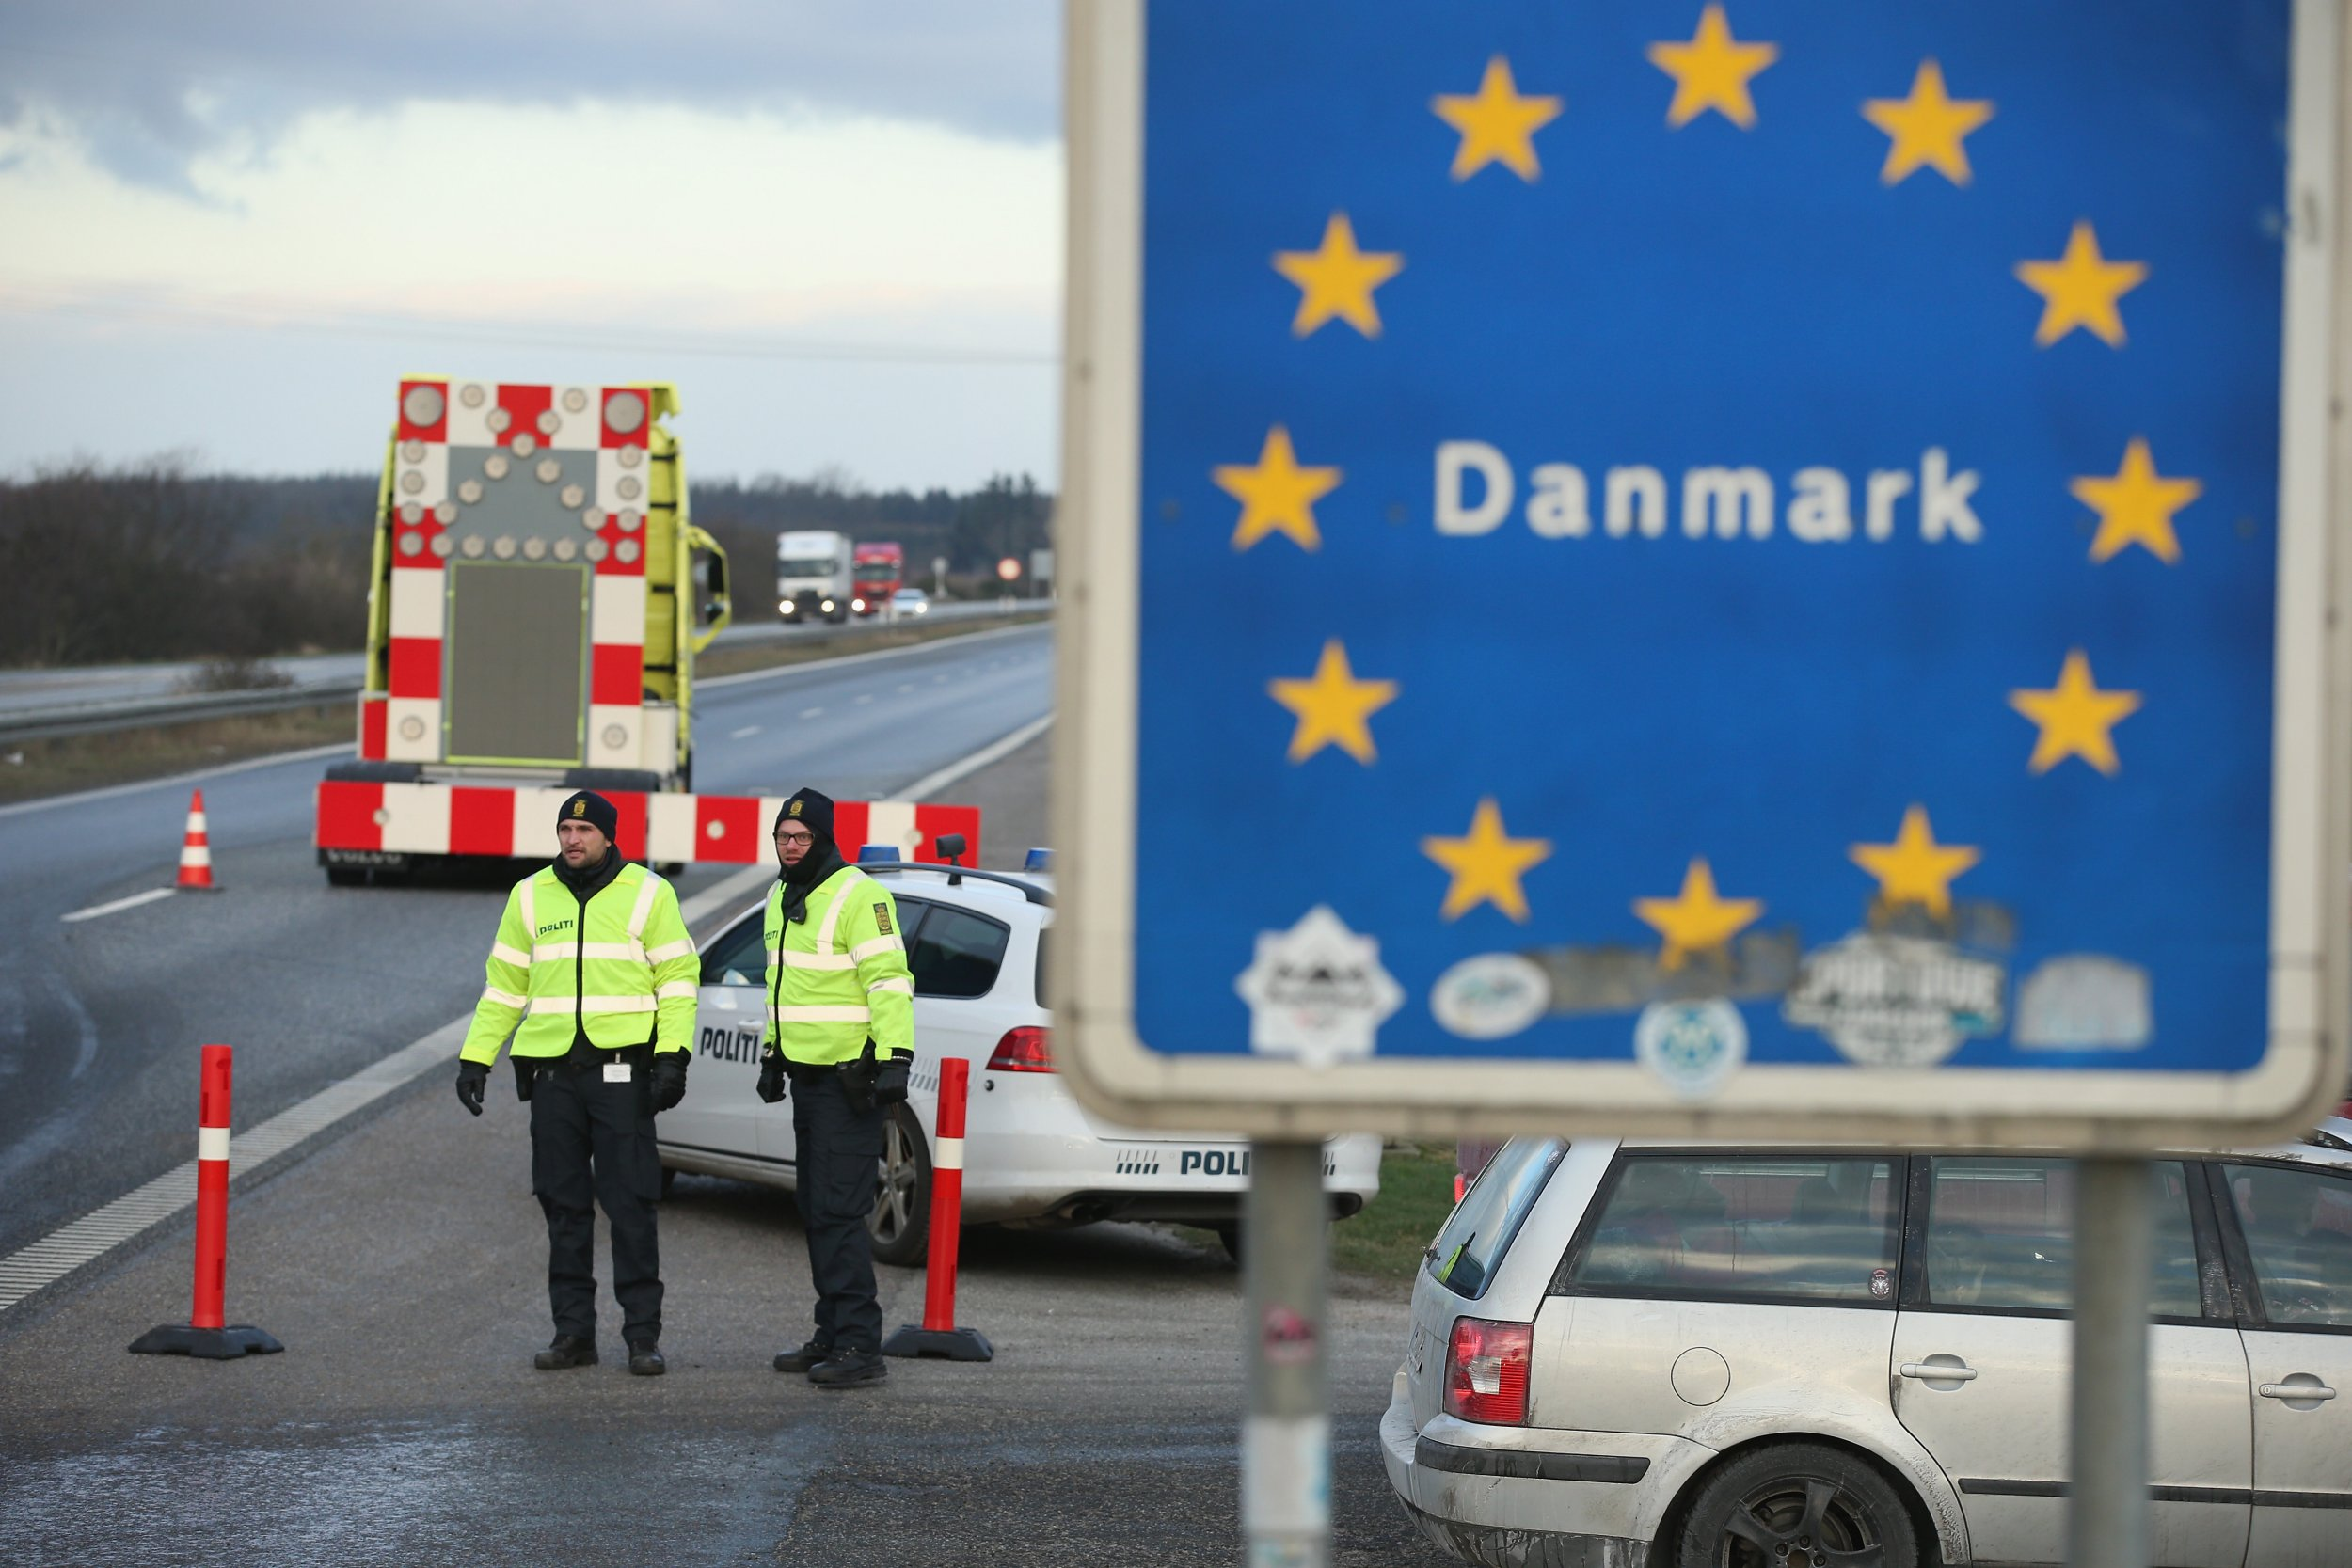 PADBORG, DENMARK - JANUARY 06: Danish police conducting spot checks on incoming traffic from Germany stand at the A7 highway border crossing on January 6, 2016 near Padborg, Denmark. Denmark introduced a 10-day period of passport controls and spot checks yesterday on its border to Germany in an effort to stem the arrival of refugees and migrants seeking to pass through Denmark on their way to Sweden. Denmark reacted to border controls introduced by Sweden the same day and is seeking to avoid a backlog of migrants accumulating in Denmark. Refugees still have the right to apply for asylum in Denmark and those caught without a valid passport or visa who do not apply for asylum are sent back to Germany. (Photo by Sean Gallup/Getty Images)